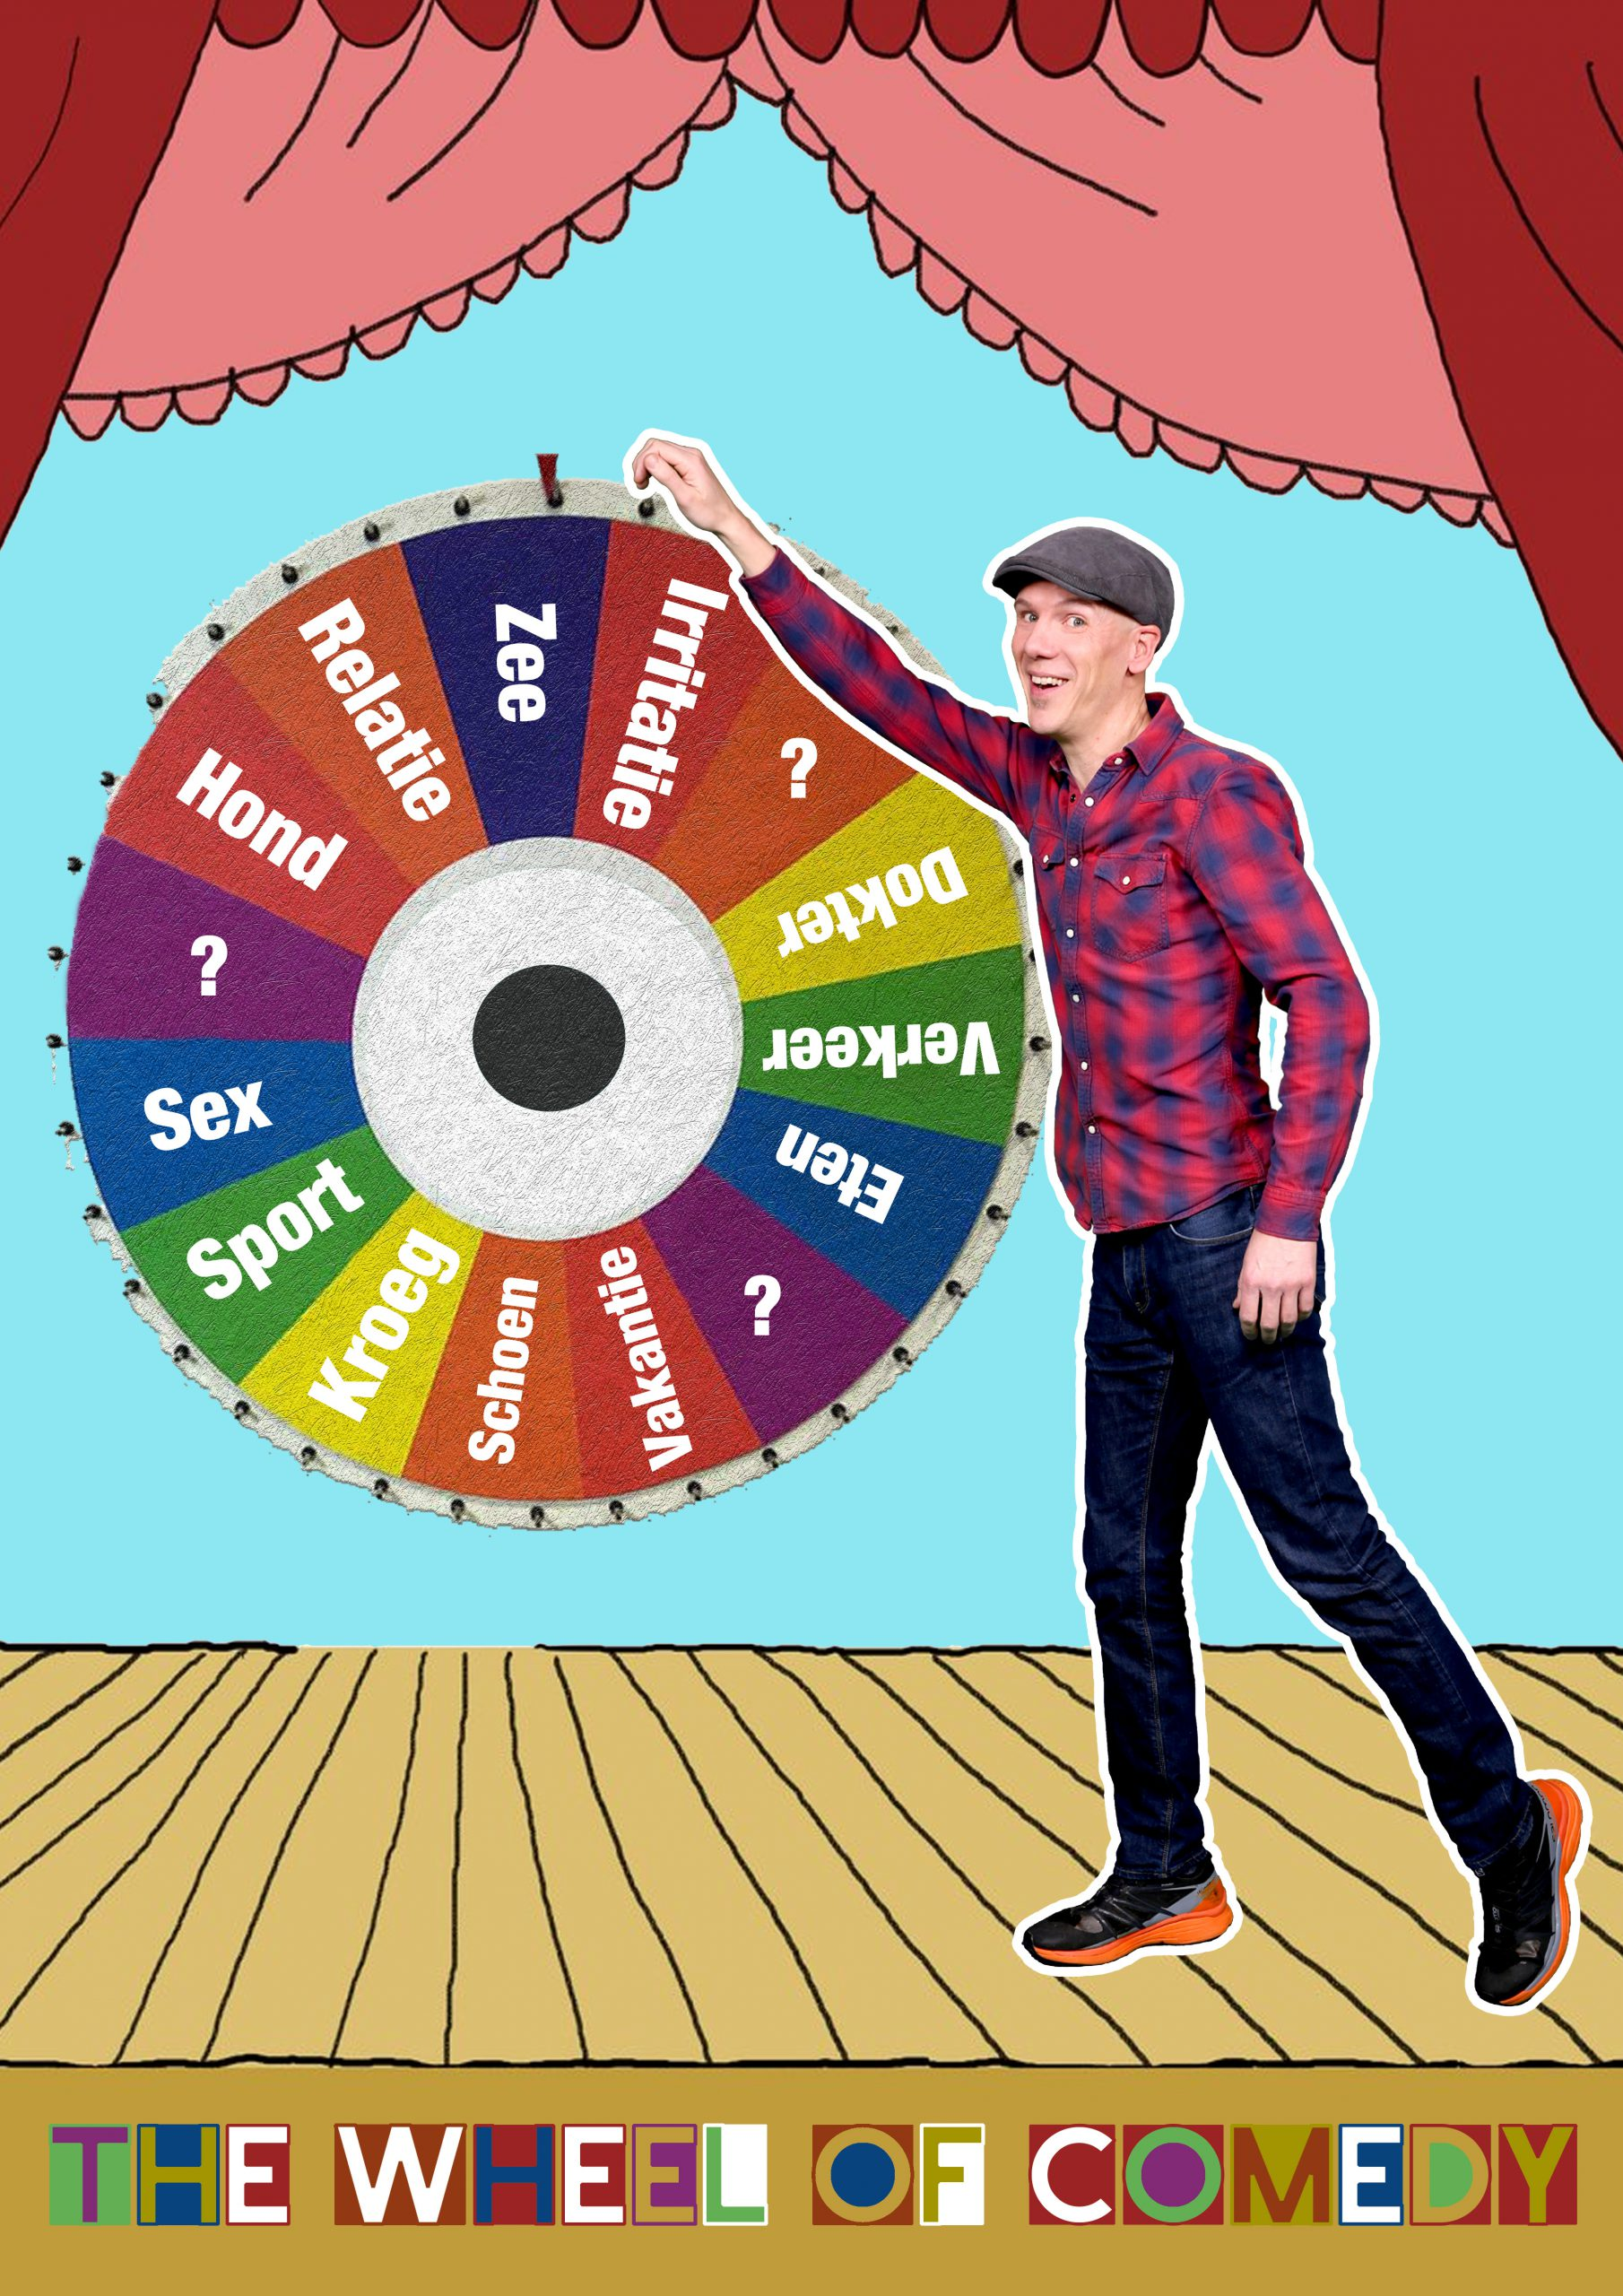 The Wheel of Comedy (tryout)